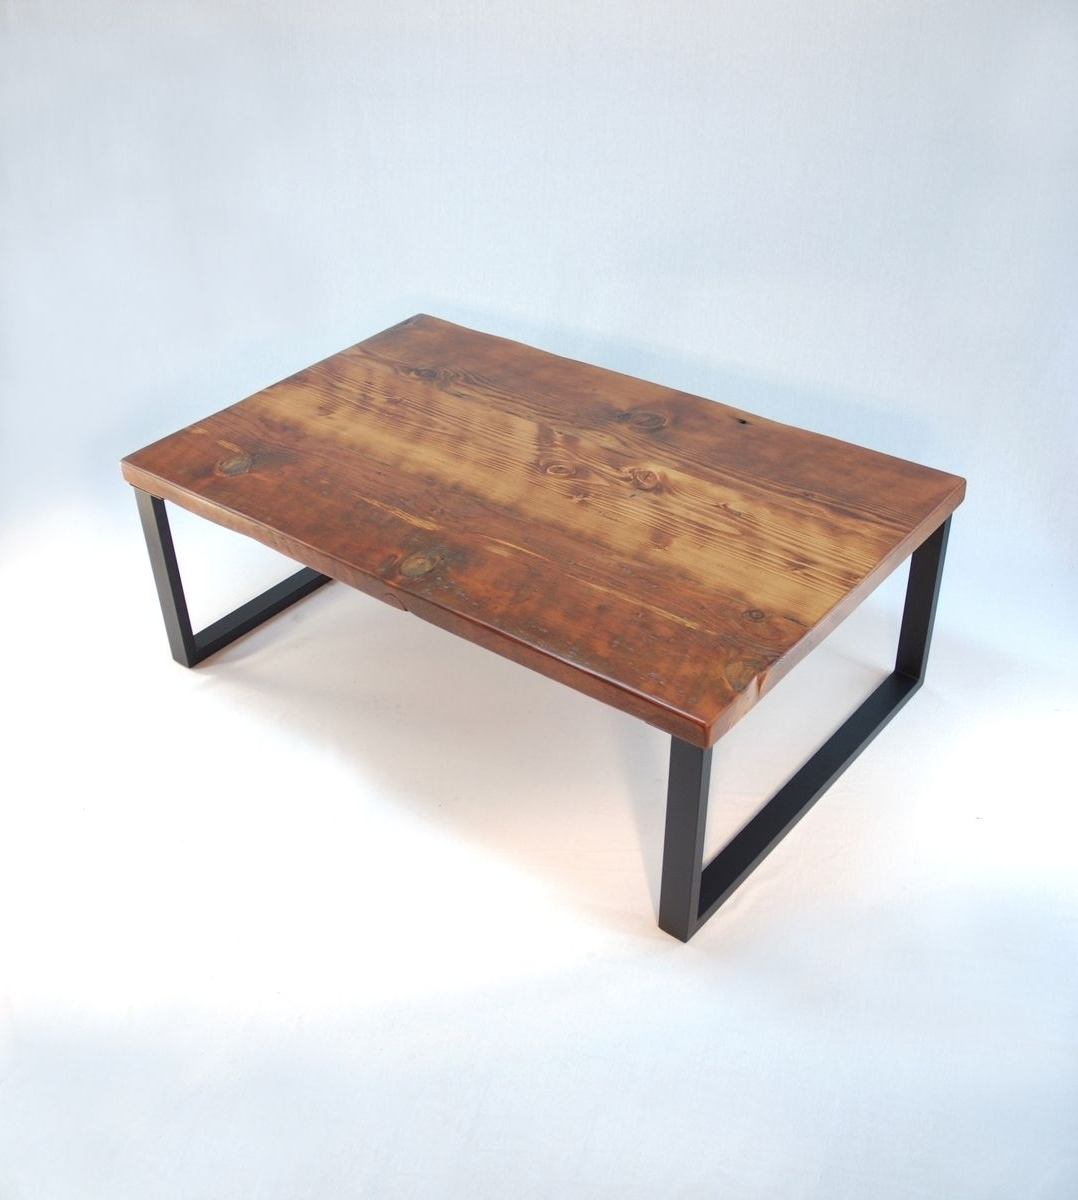 Widely Used Modern Rustic Coffee Tables In Home Design Ideas Stylish Coffee Table Kitchen Tables Modern Rustic (View 18 of 20)